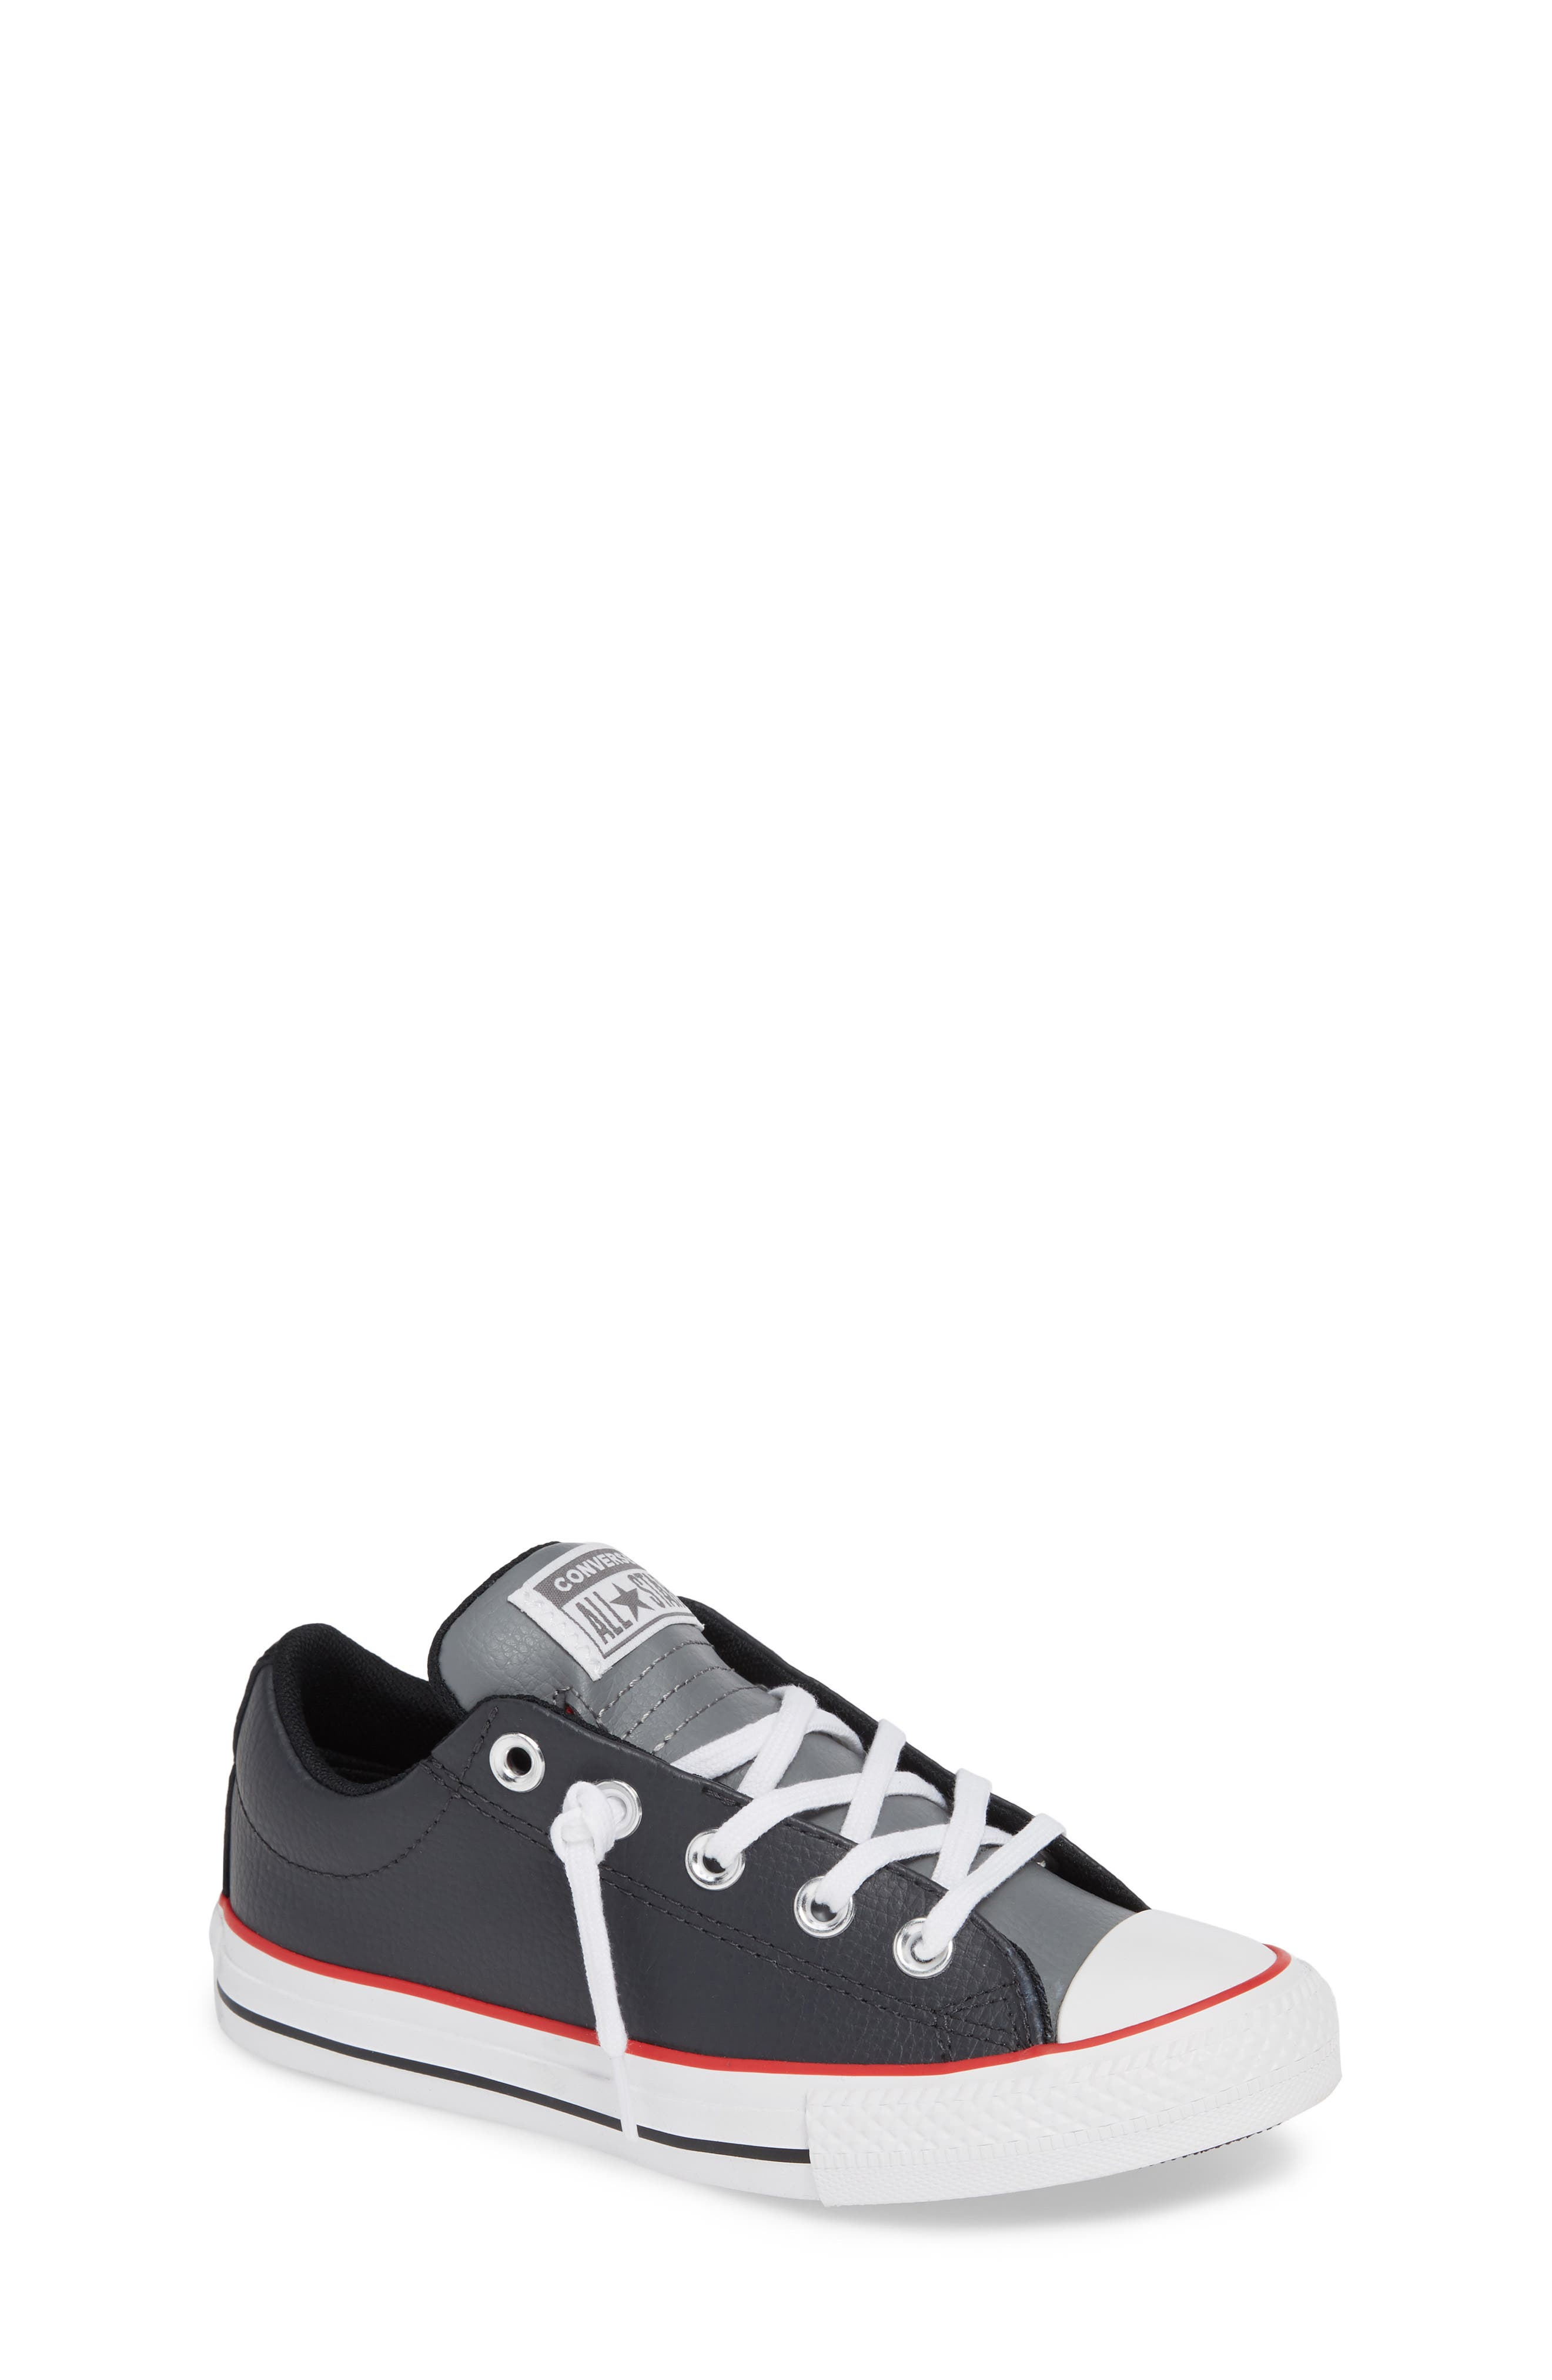 Chuck Taylor<sup>®</sup> All Star<sup>®</sup> Collegiate Street Leather Slip-On Sneaker, Main, color, 001